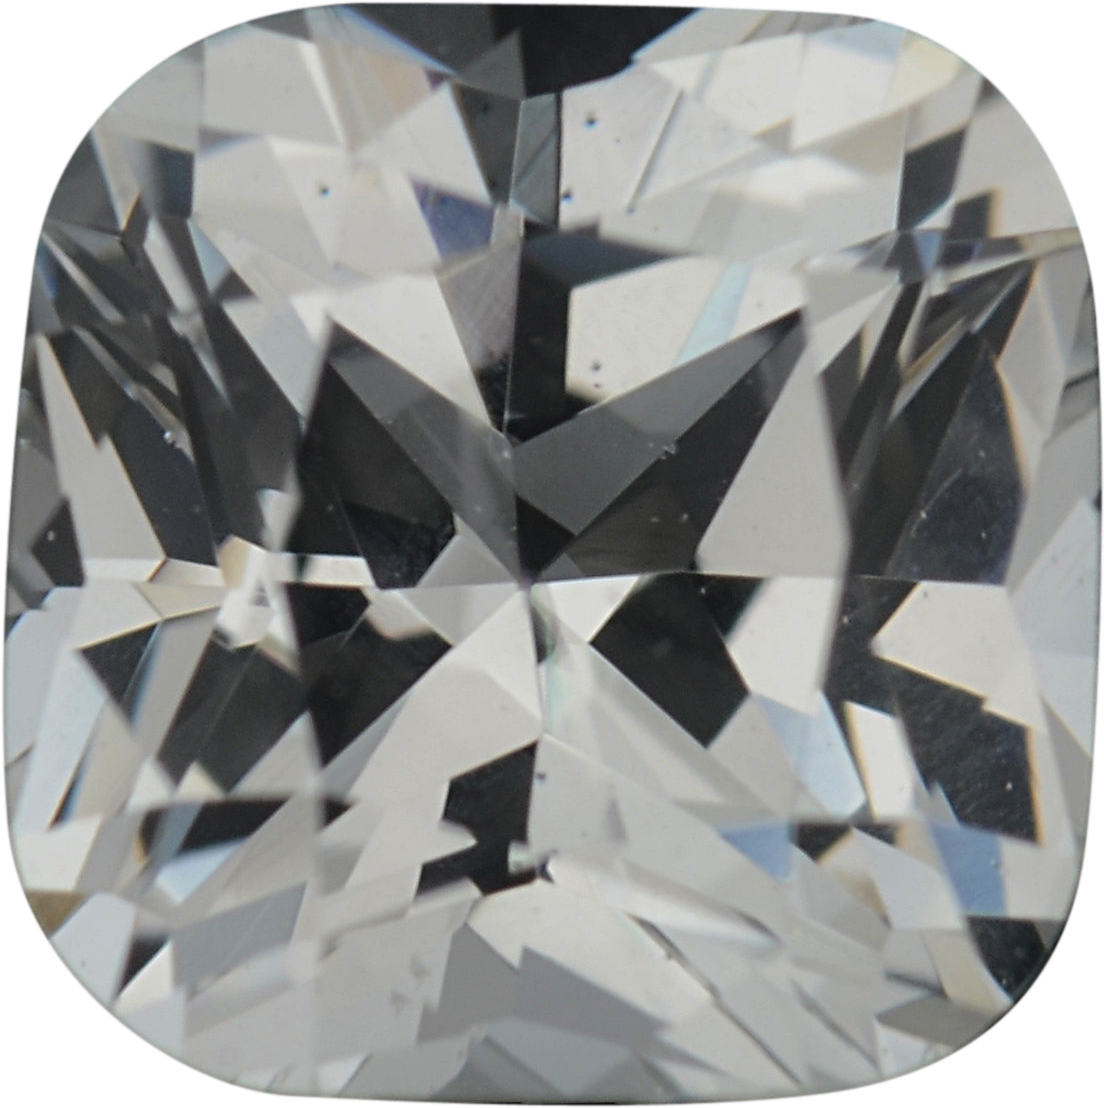 5.5 x 5.46 mm, White Loose Sapphire Gemstone in Antique Square Cut, Near Colorless, 0.97 carats